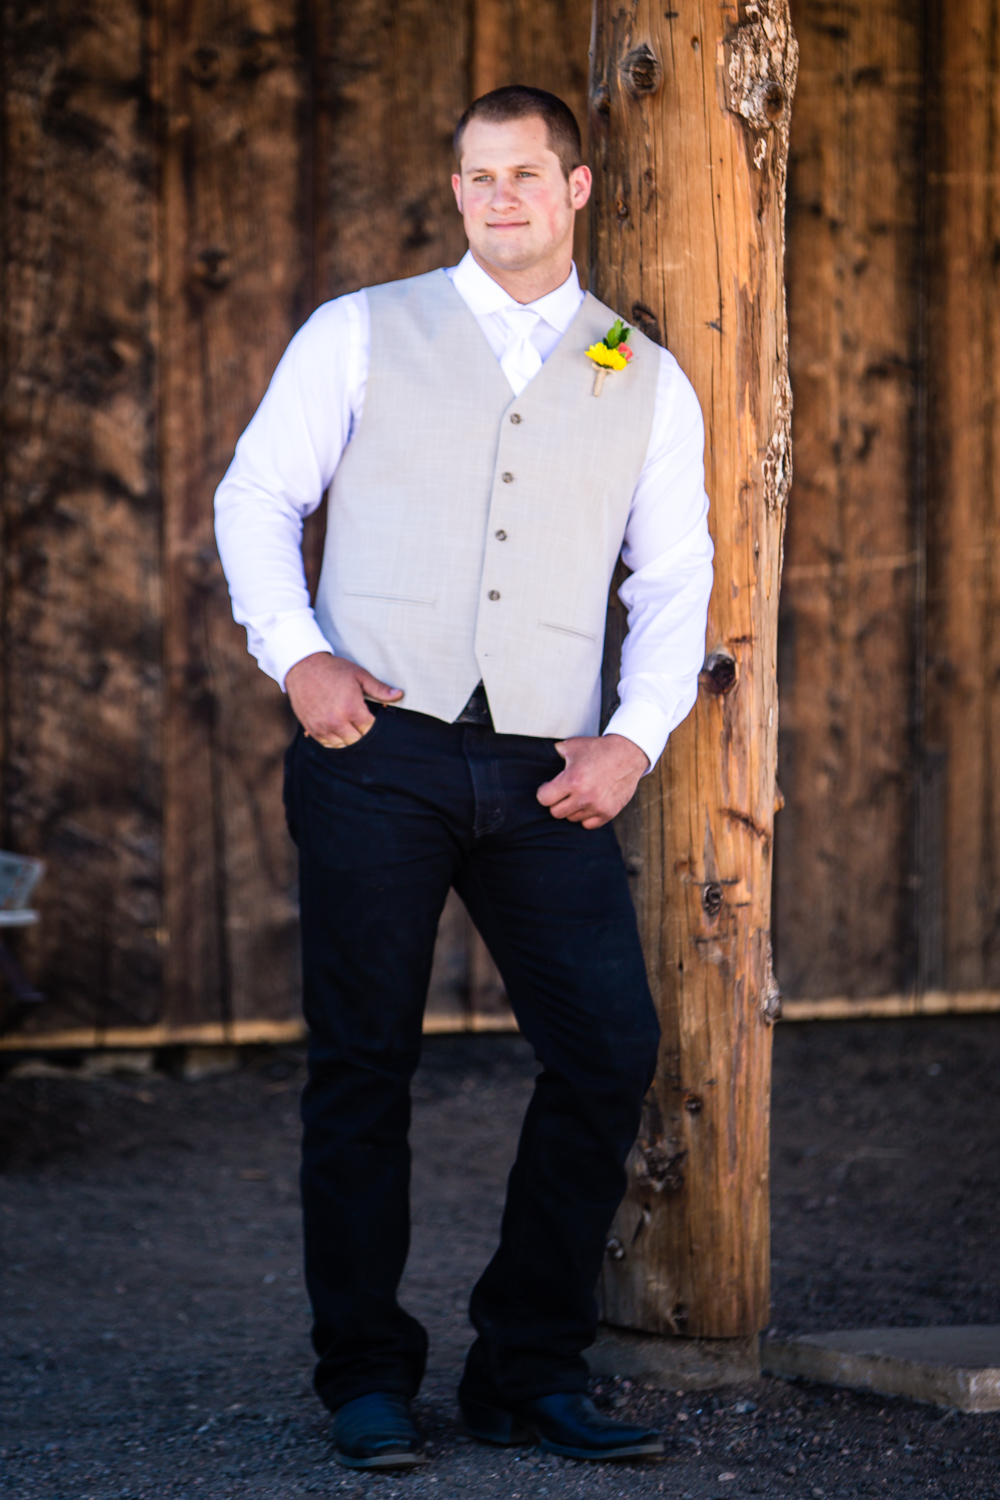 Groomals.The barn at Evergreen Memorial. Photographed by JMGant Photography.